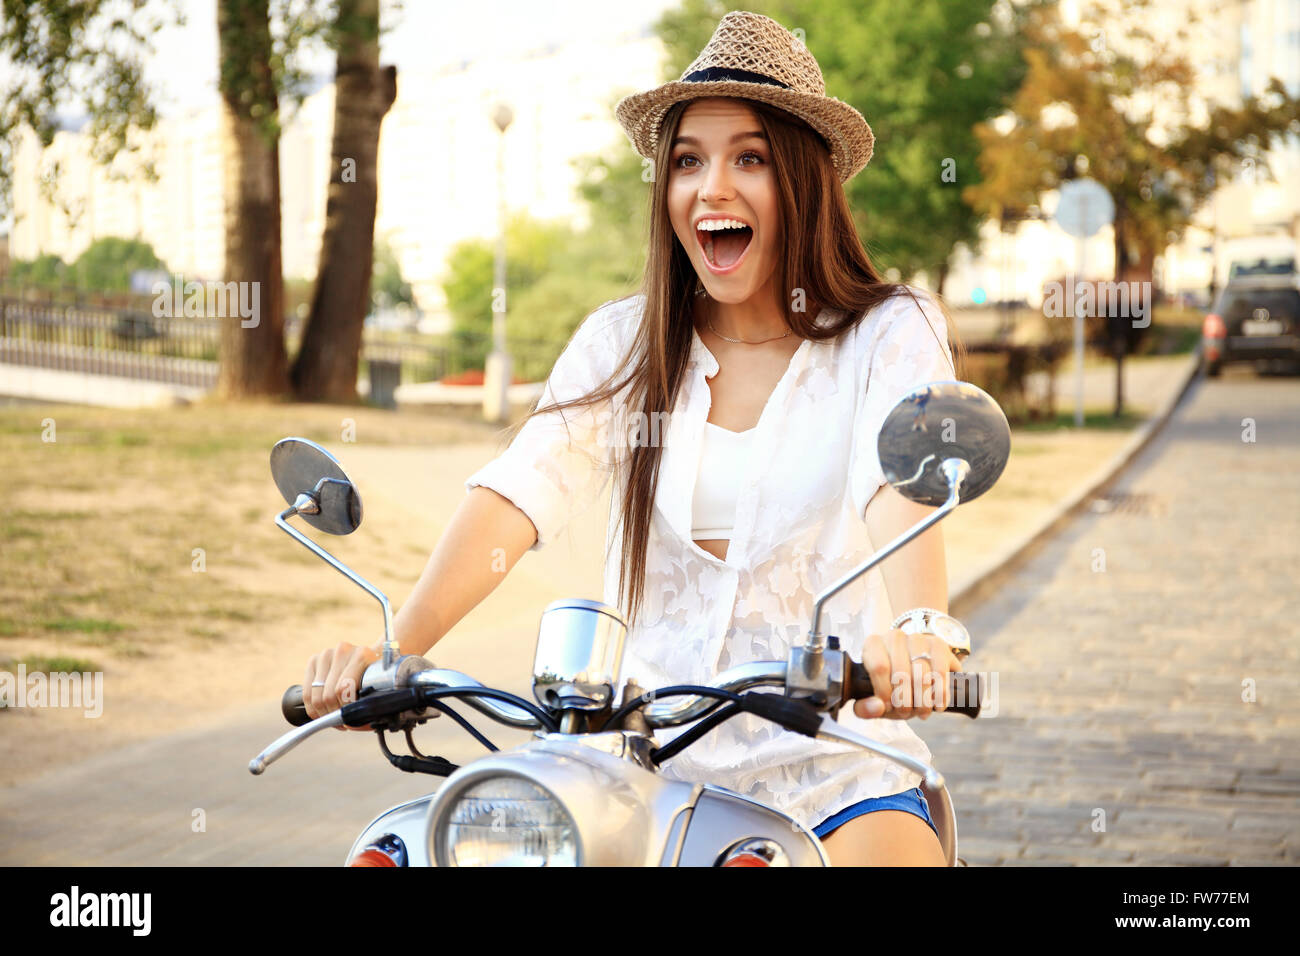 Portrait of a beautiful girl sitting on silver retro scooter, smiling and looking at the camera - Stock Image